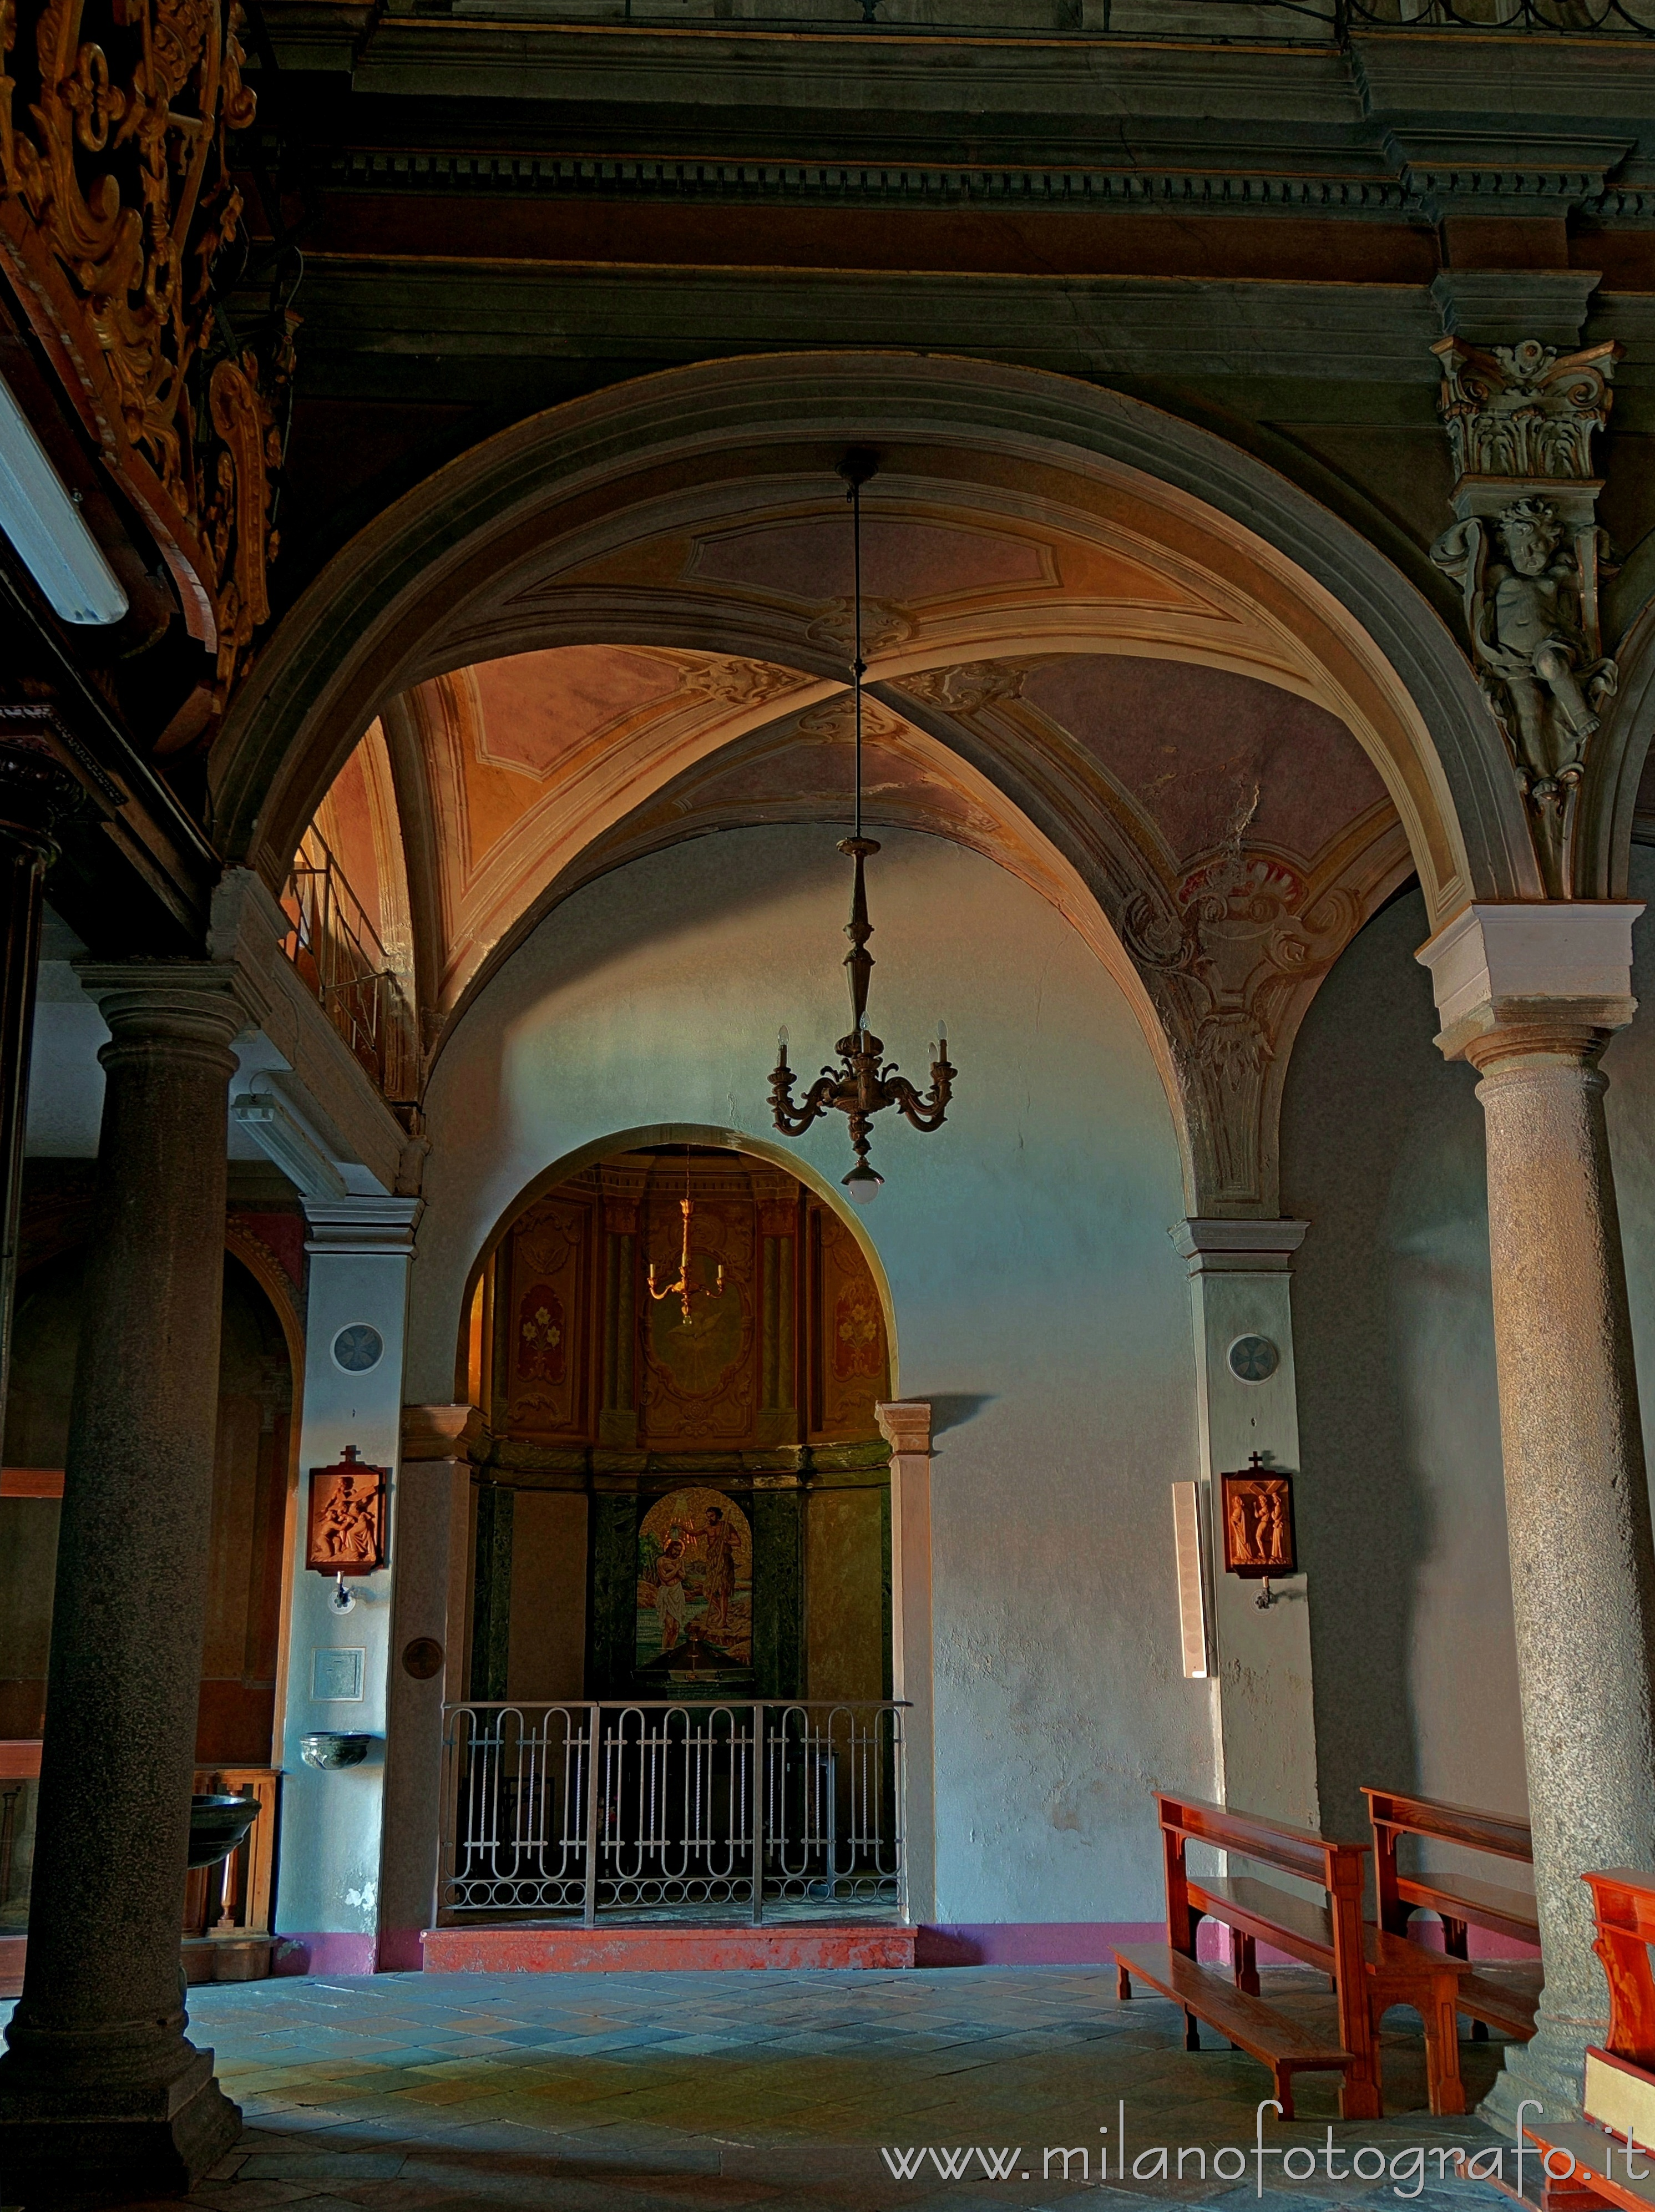 Candelo (Biella, Italy): Baptistery and first spans of the Church of San Pietro - Candelo (Biella, Italy)